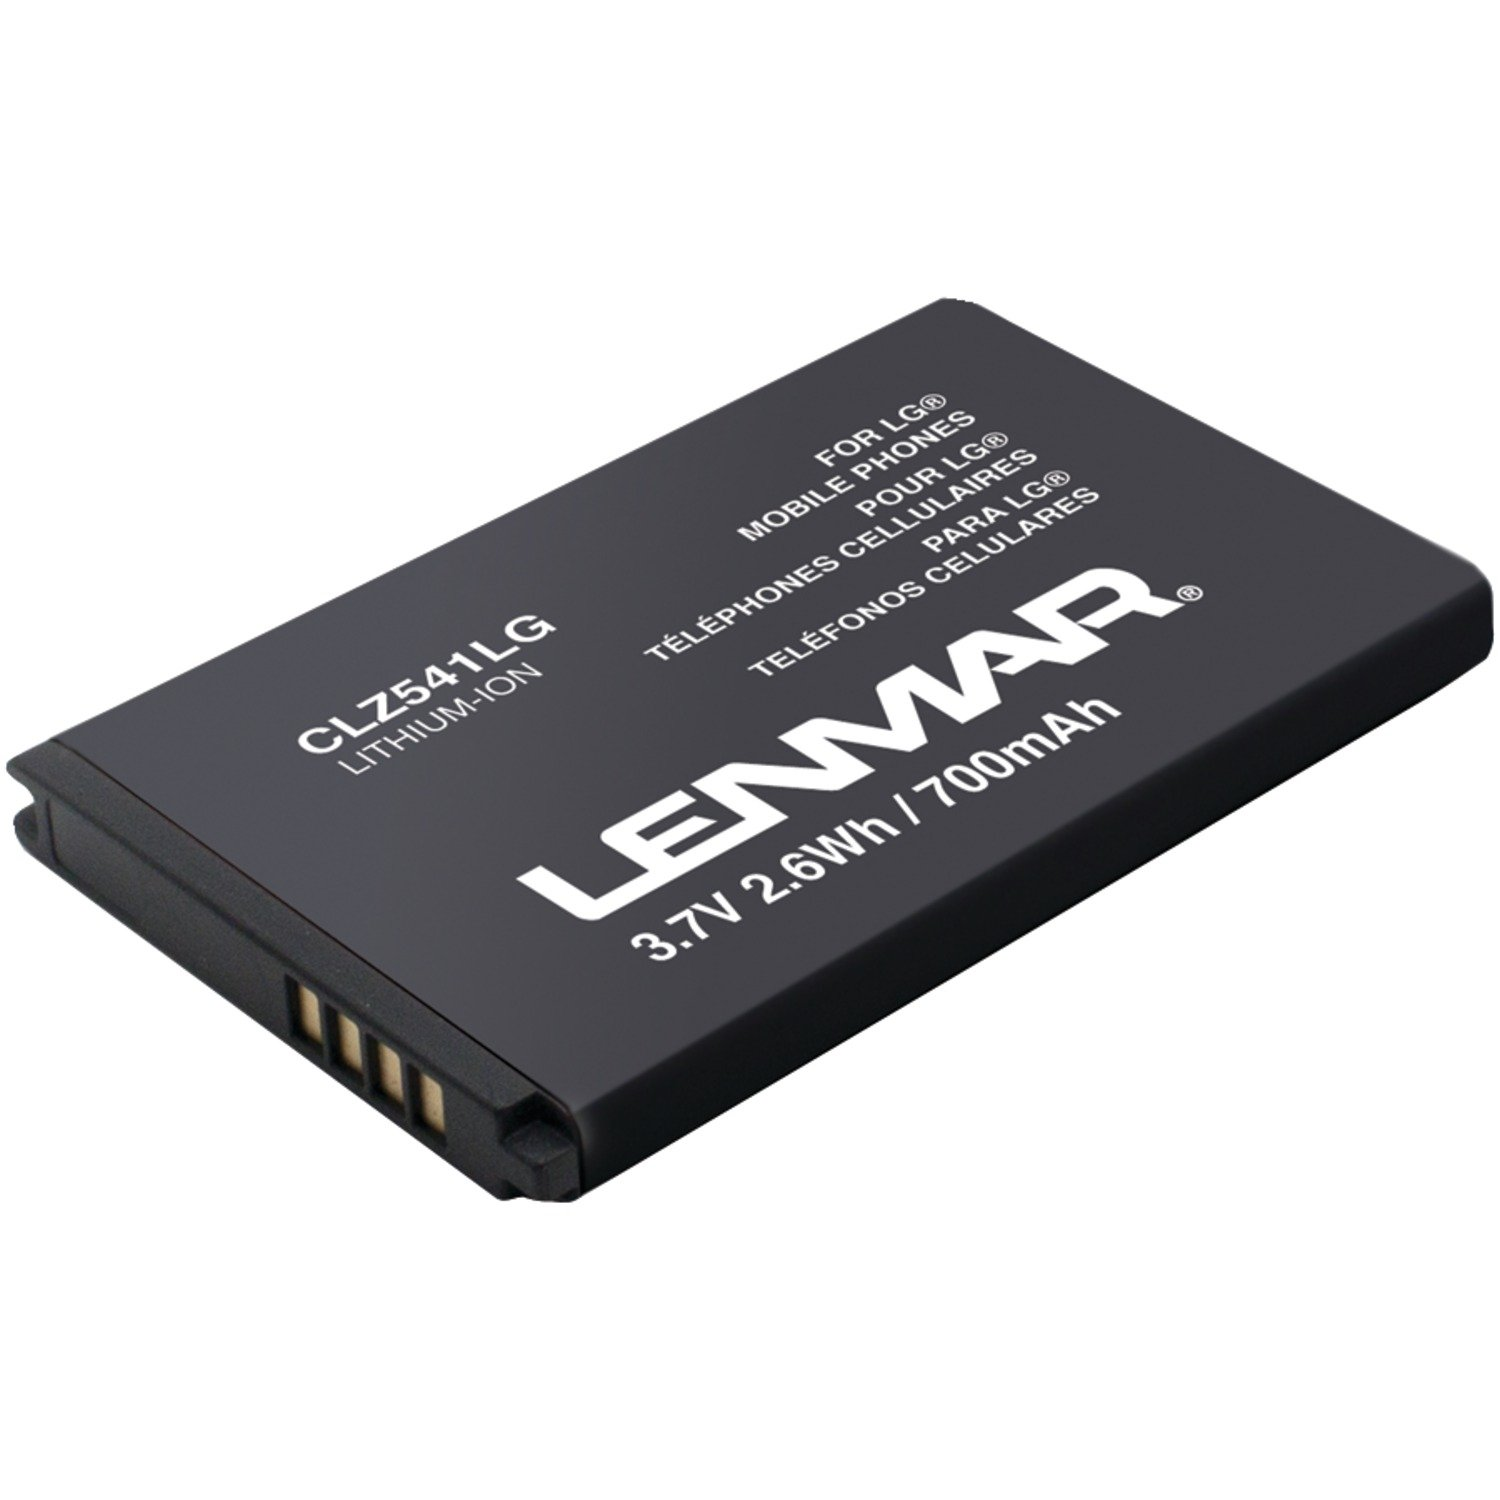 LG Cosmos 2 and LG V251 Battery Replacement for OEM BL-46CN, ML-LG137 by Lenmar